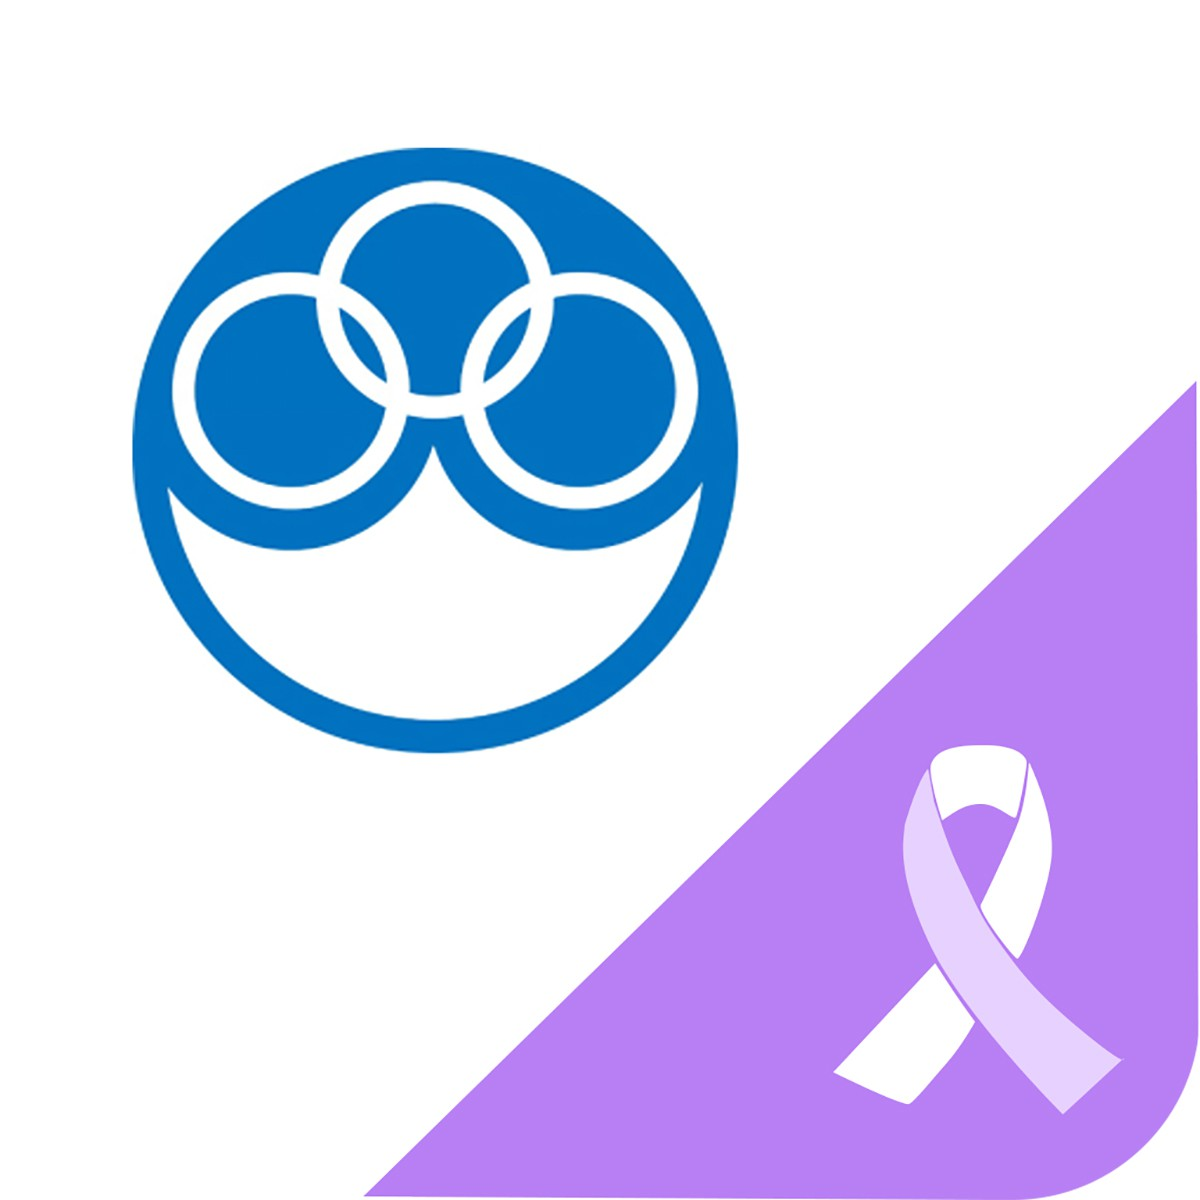 cancer center icon のコピー